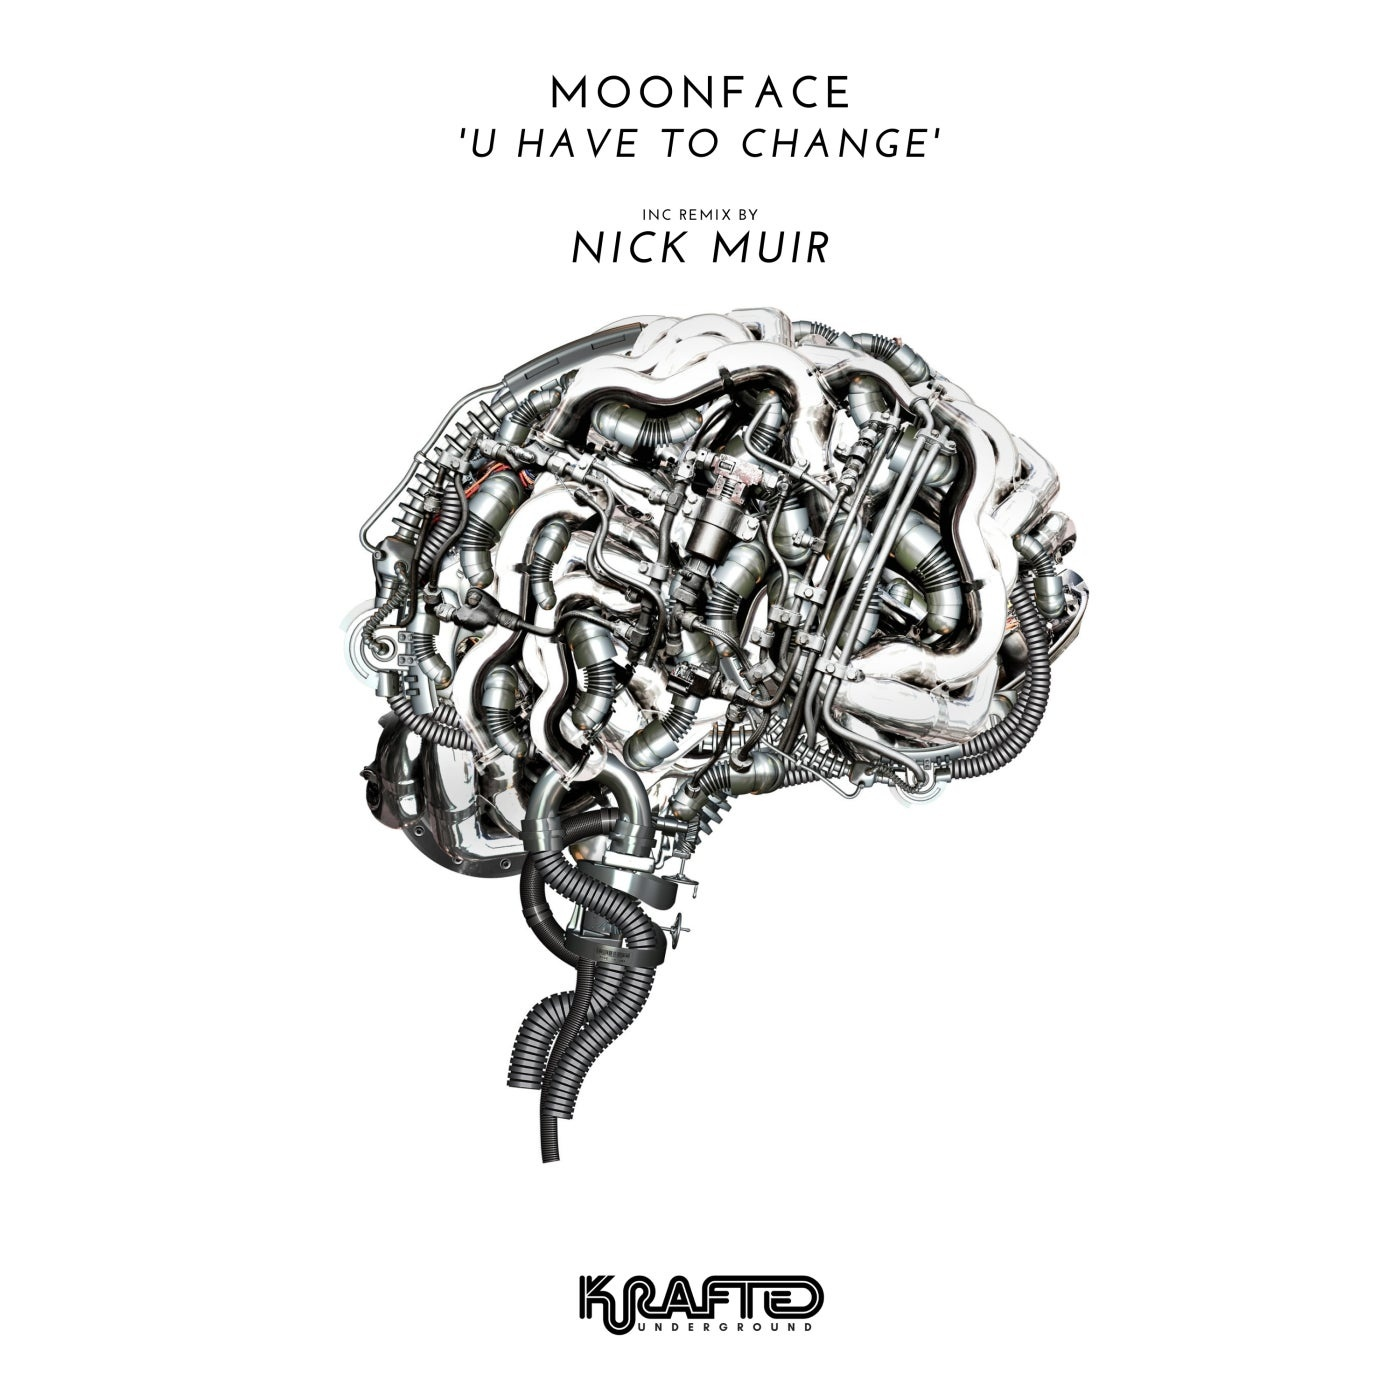 Cover - Moonface - U Have to Change (Nick Muir Remix)